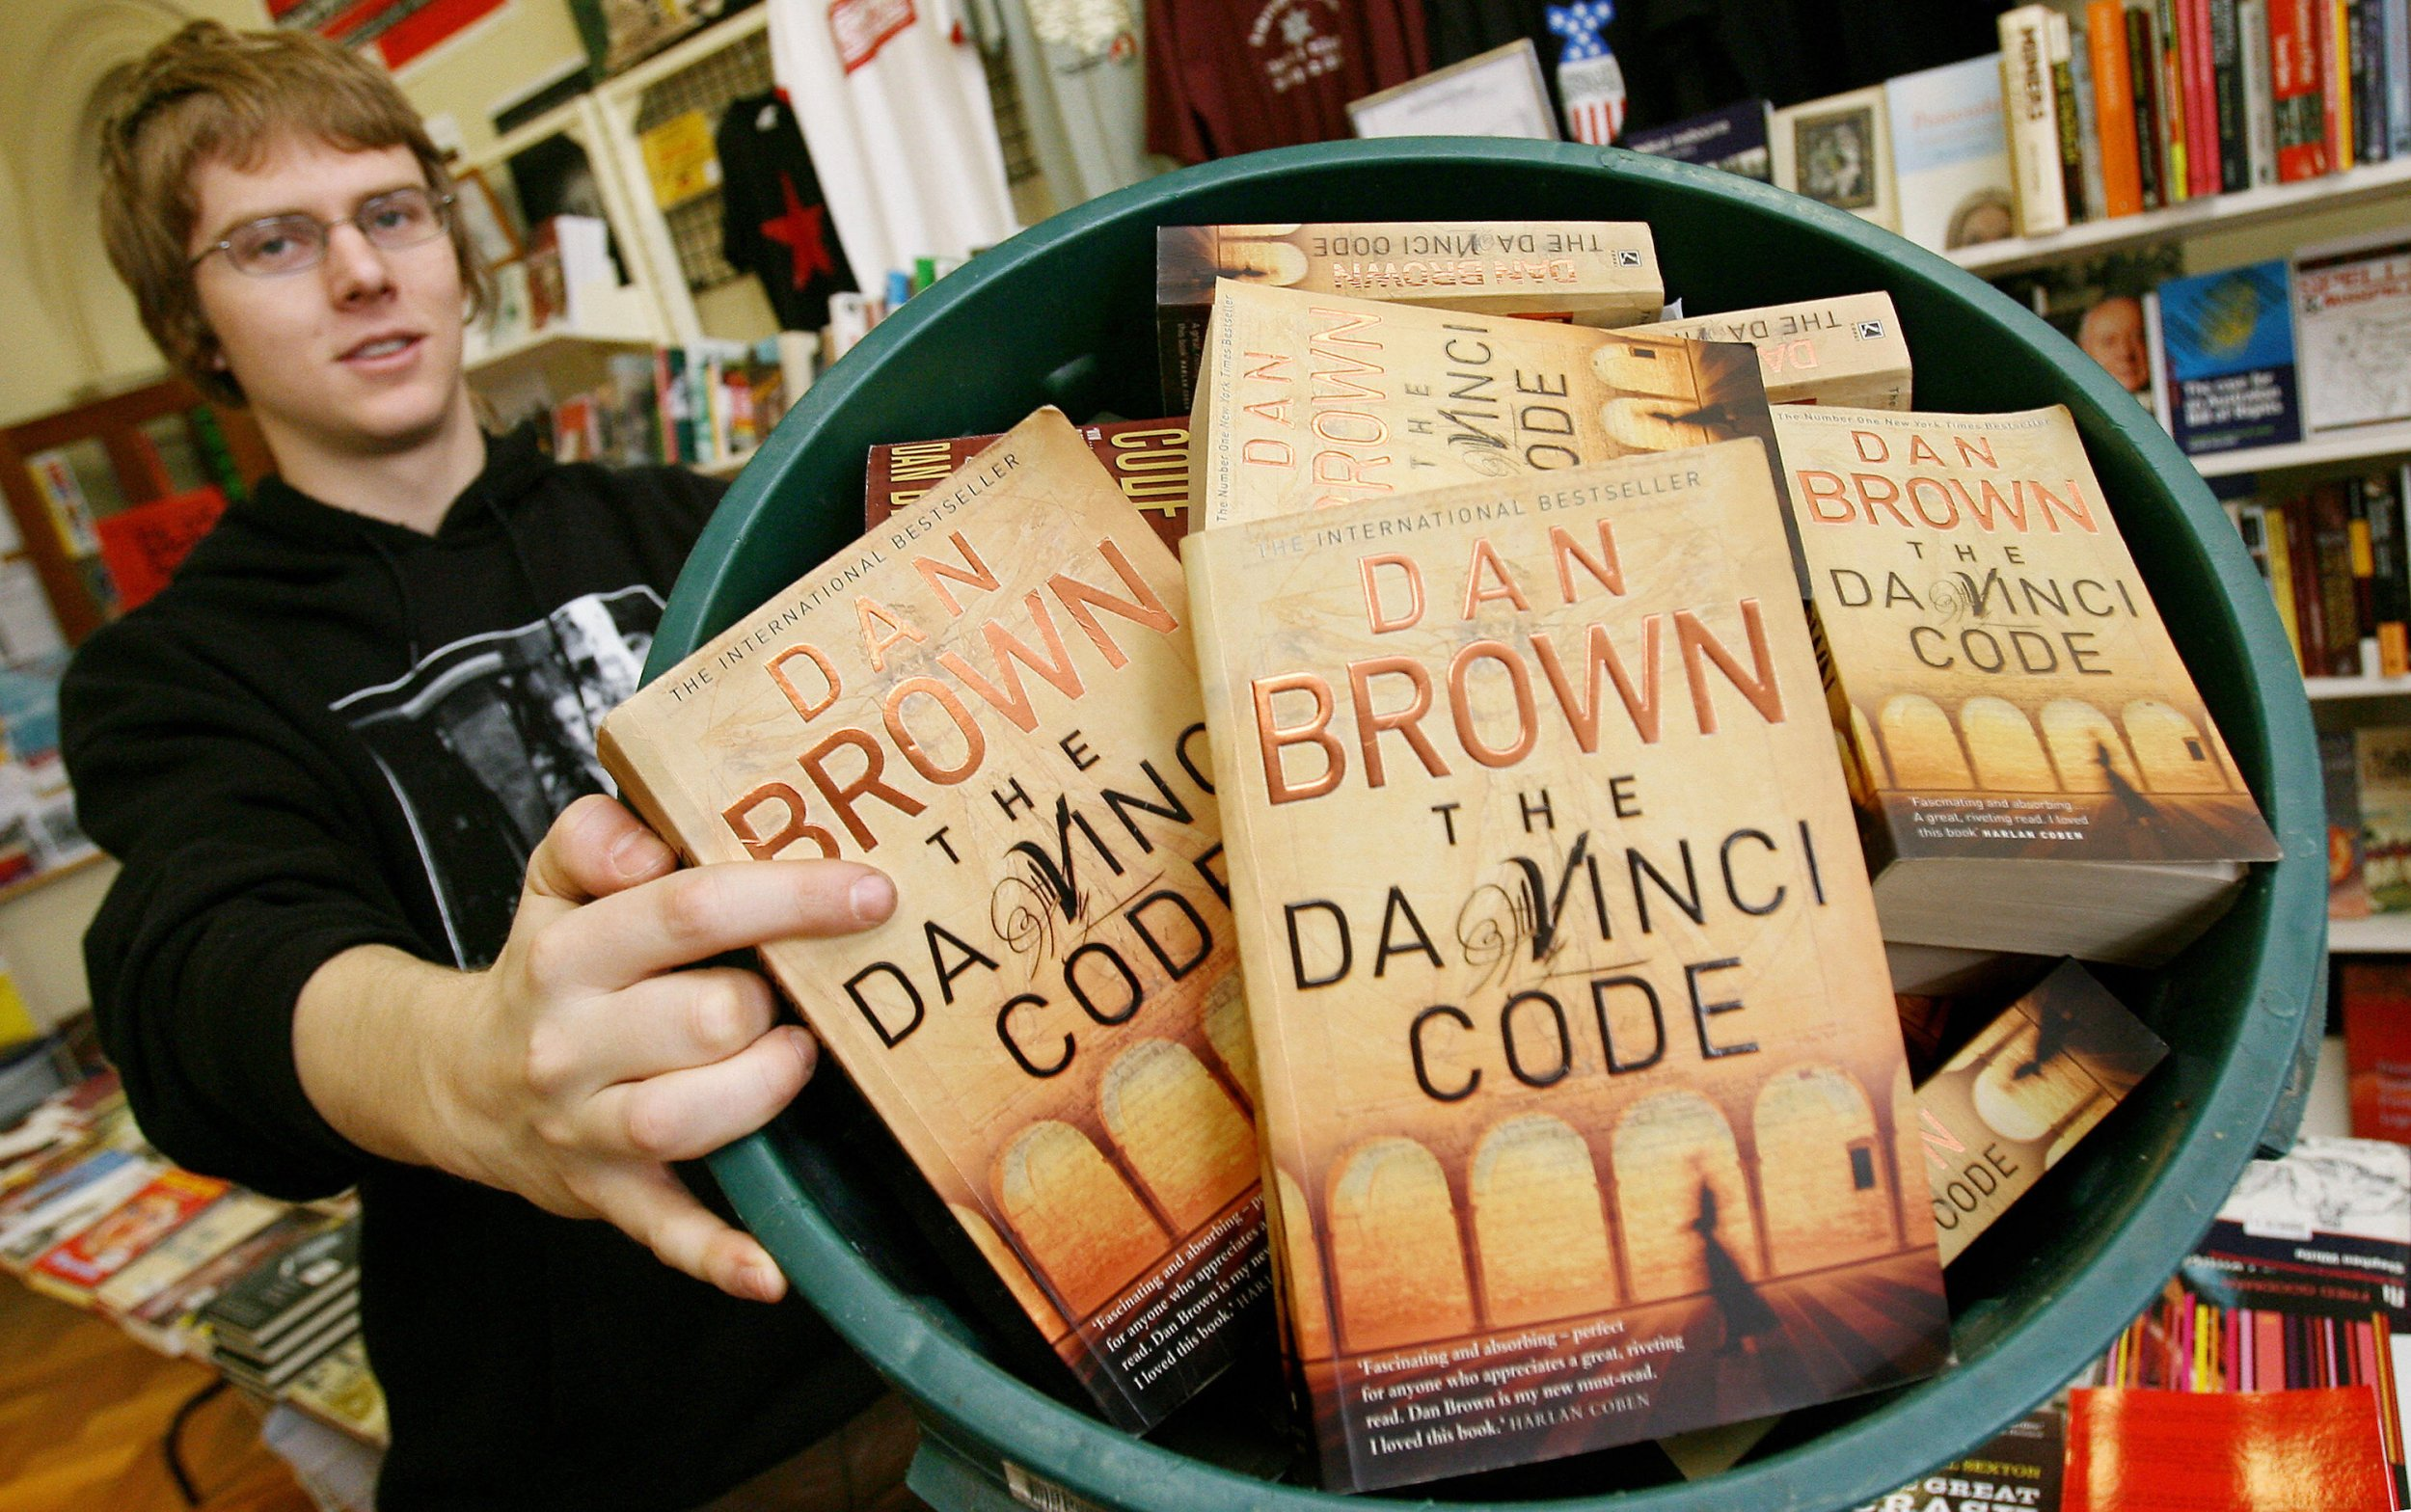 dan brown is releasing a young adult da vinci code and no one s  copies of the da vinci code by dan brown the book will be republished for a young adult audience in william west afp getty